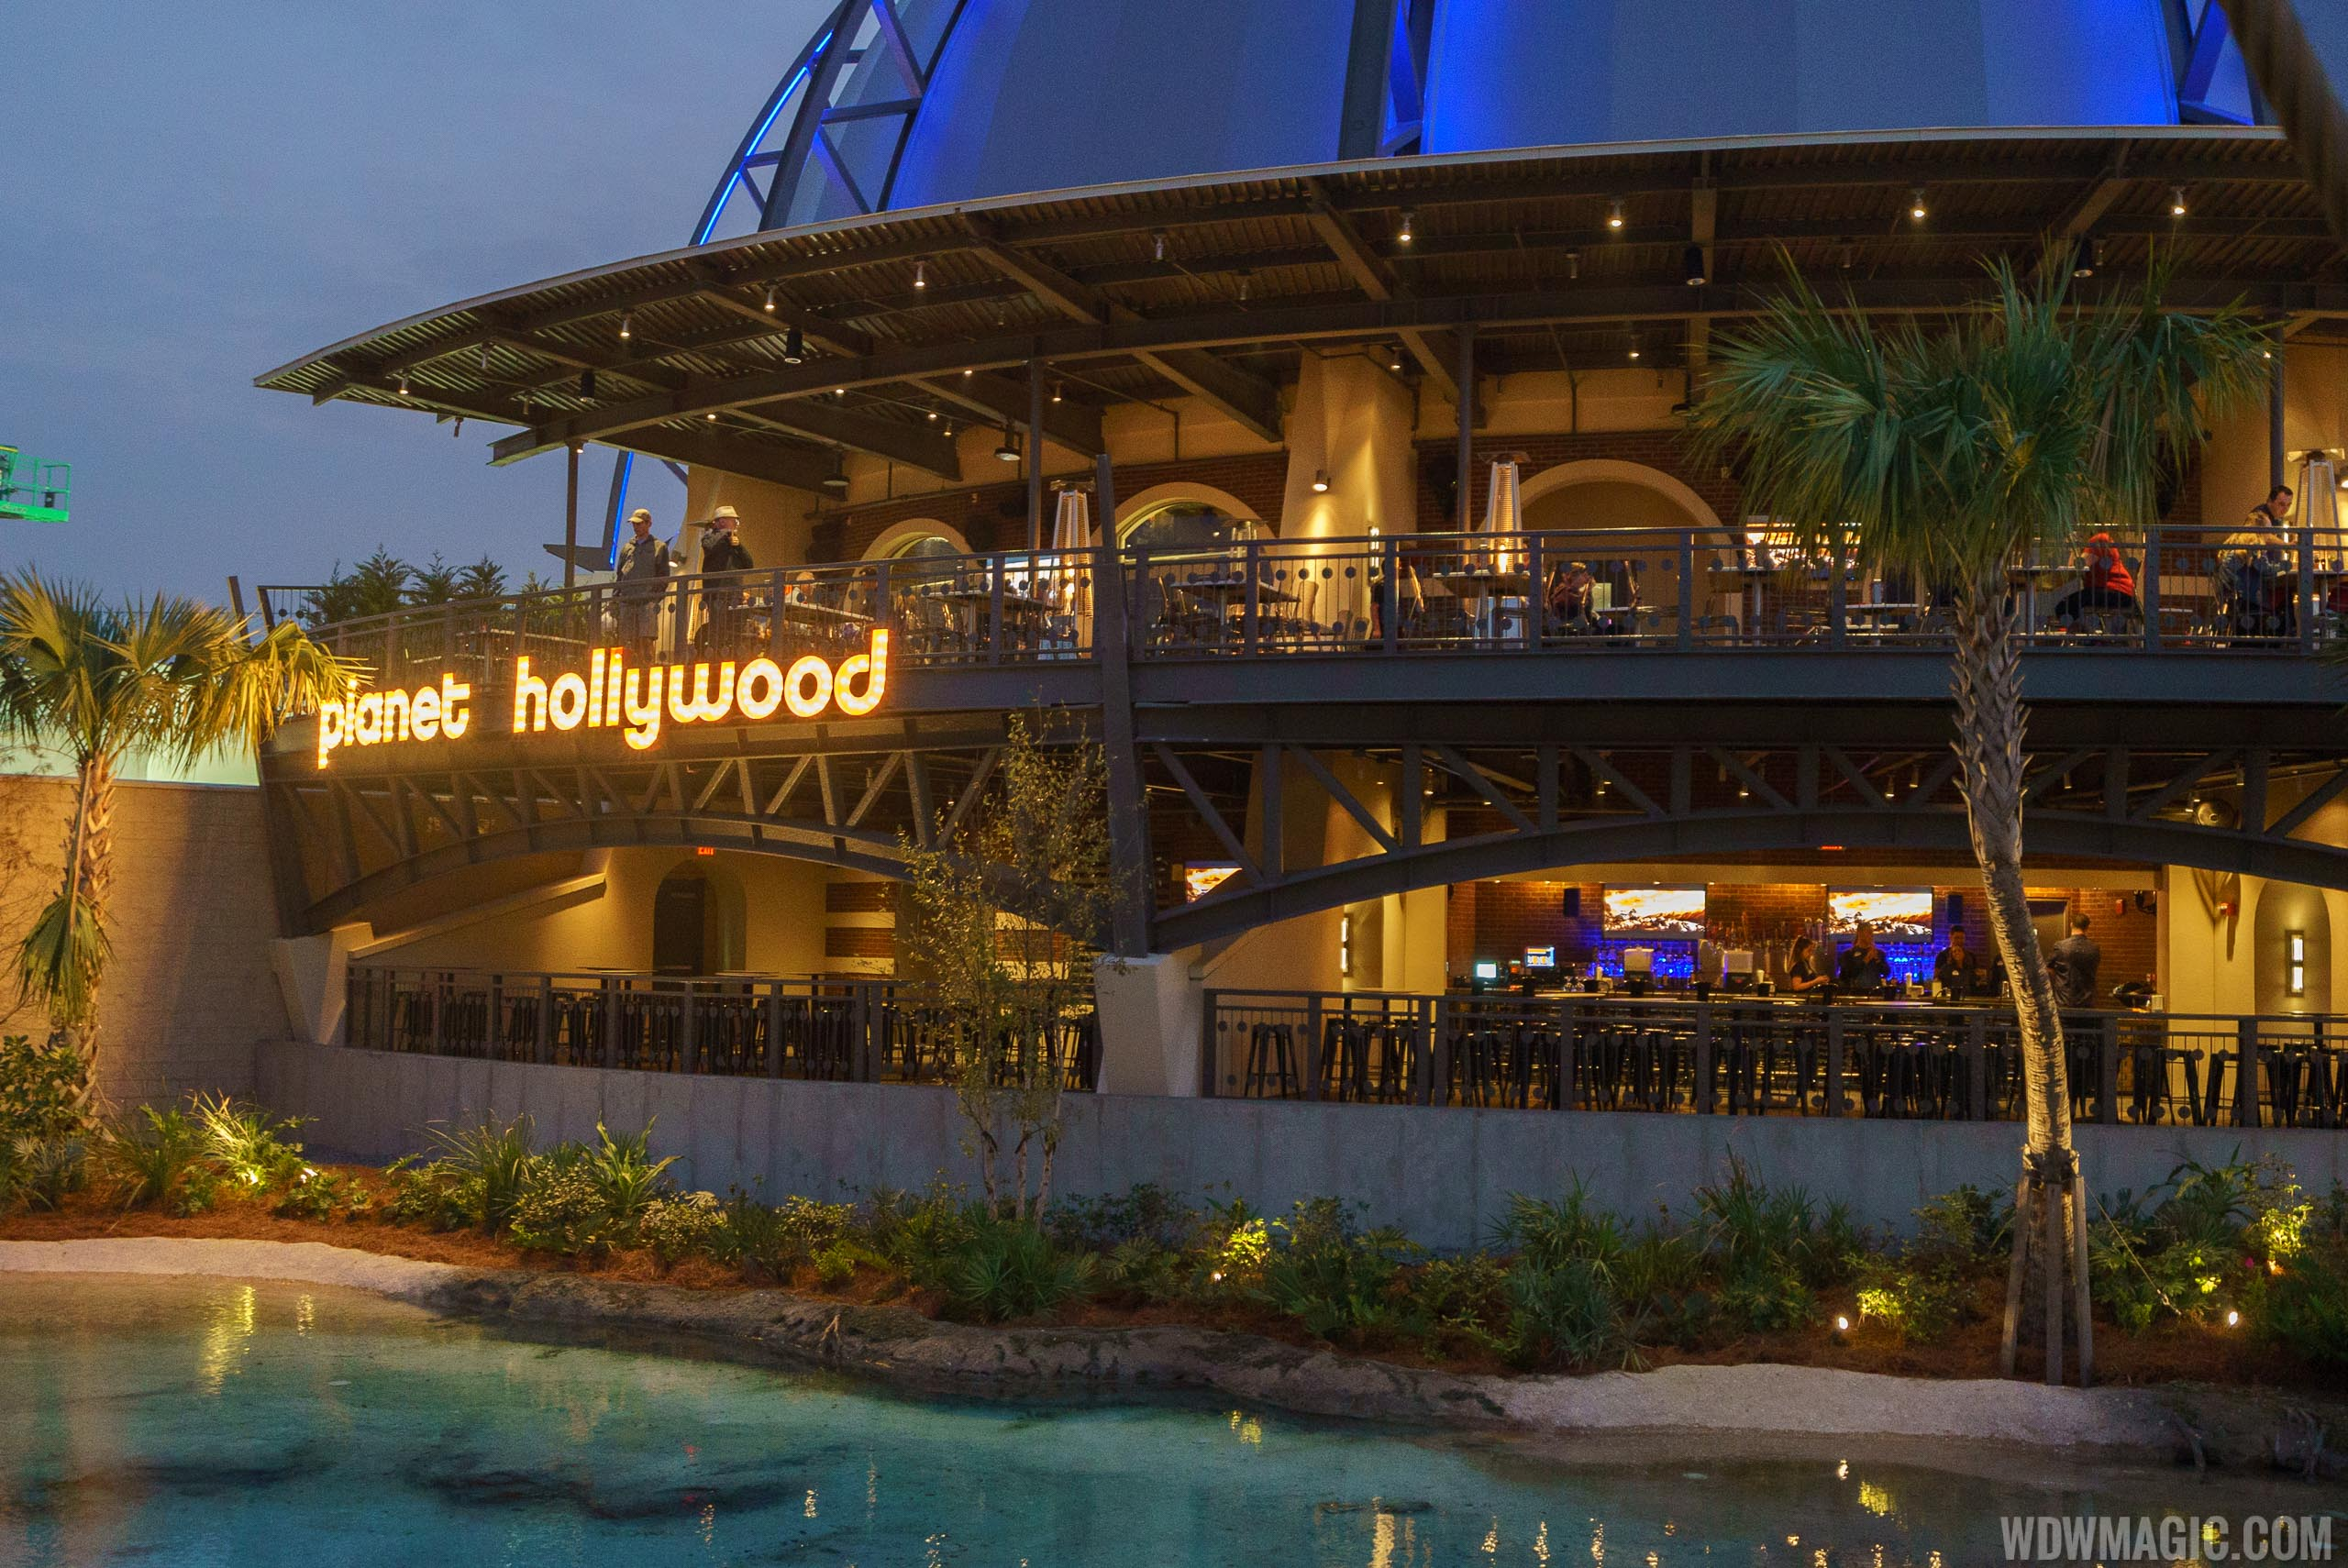 Planet Hollywood Observatory - Stargazers Lounge and Outdoor dining